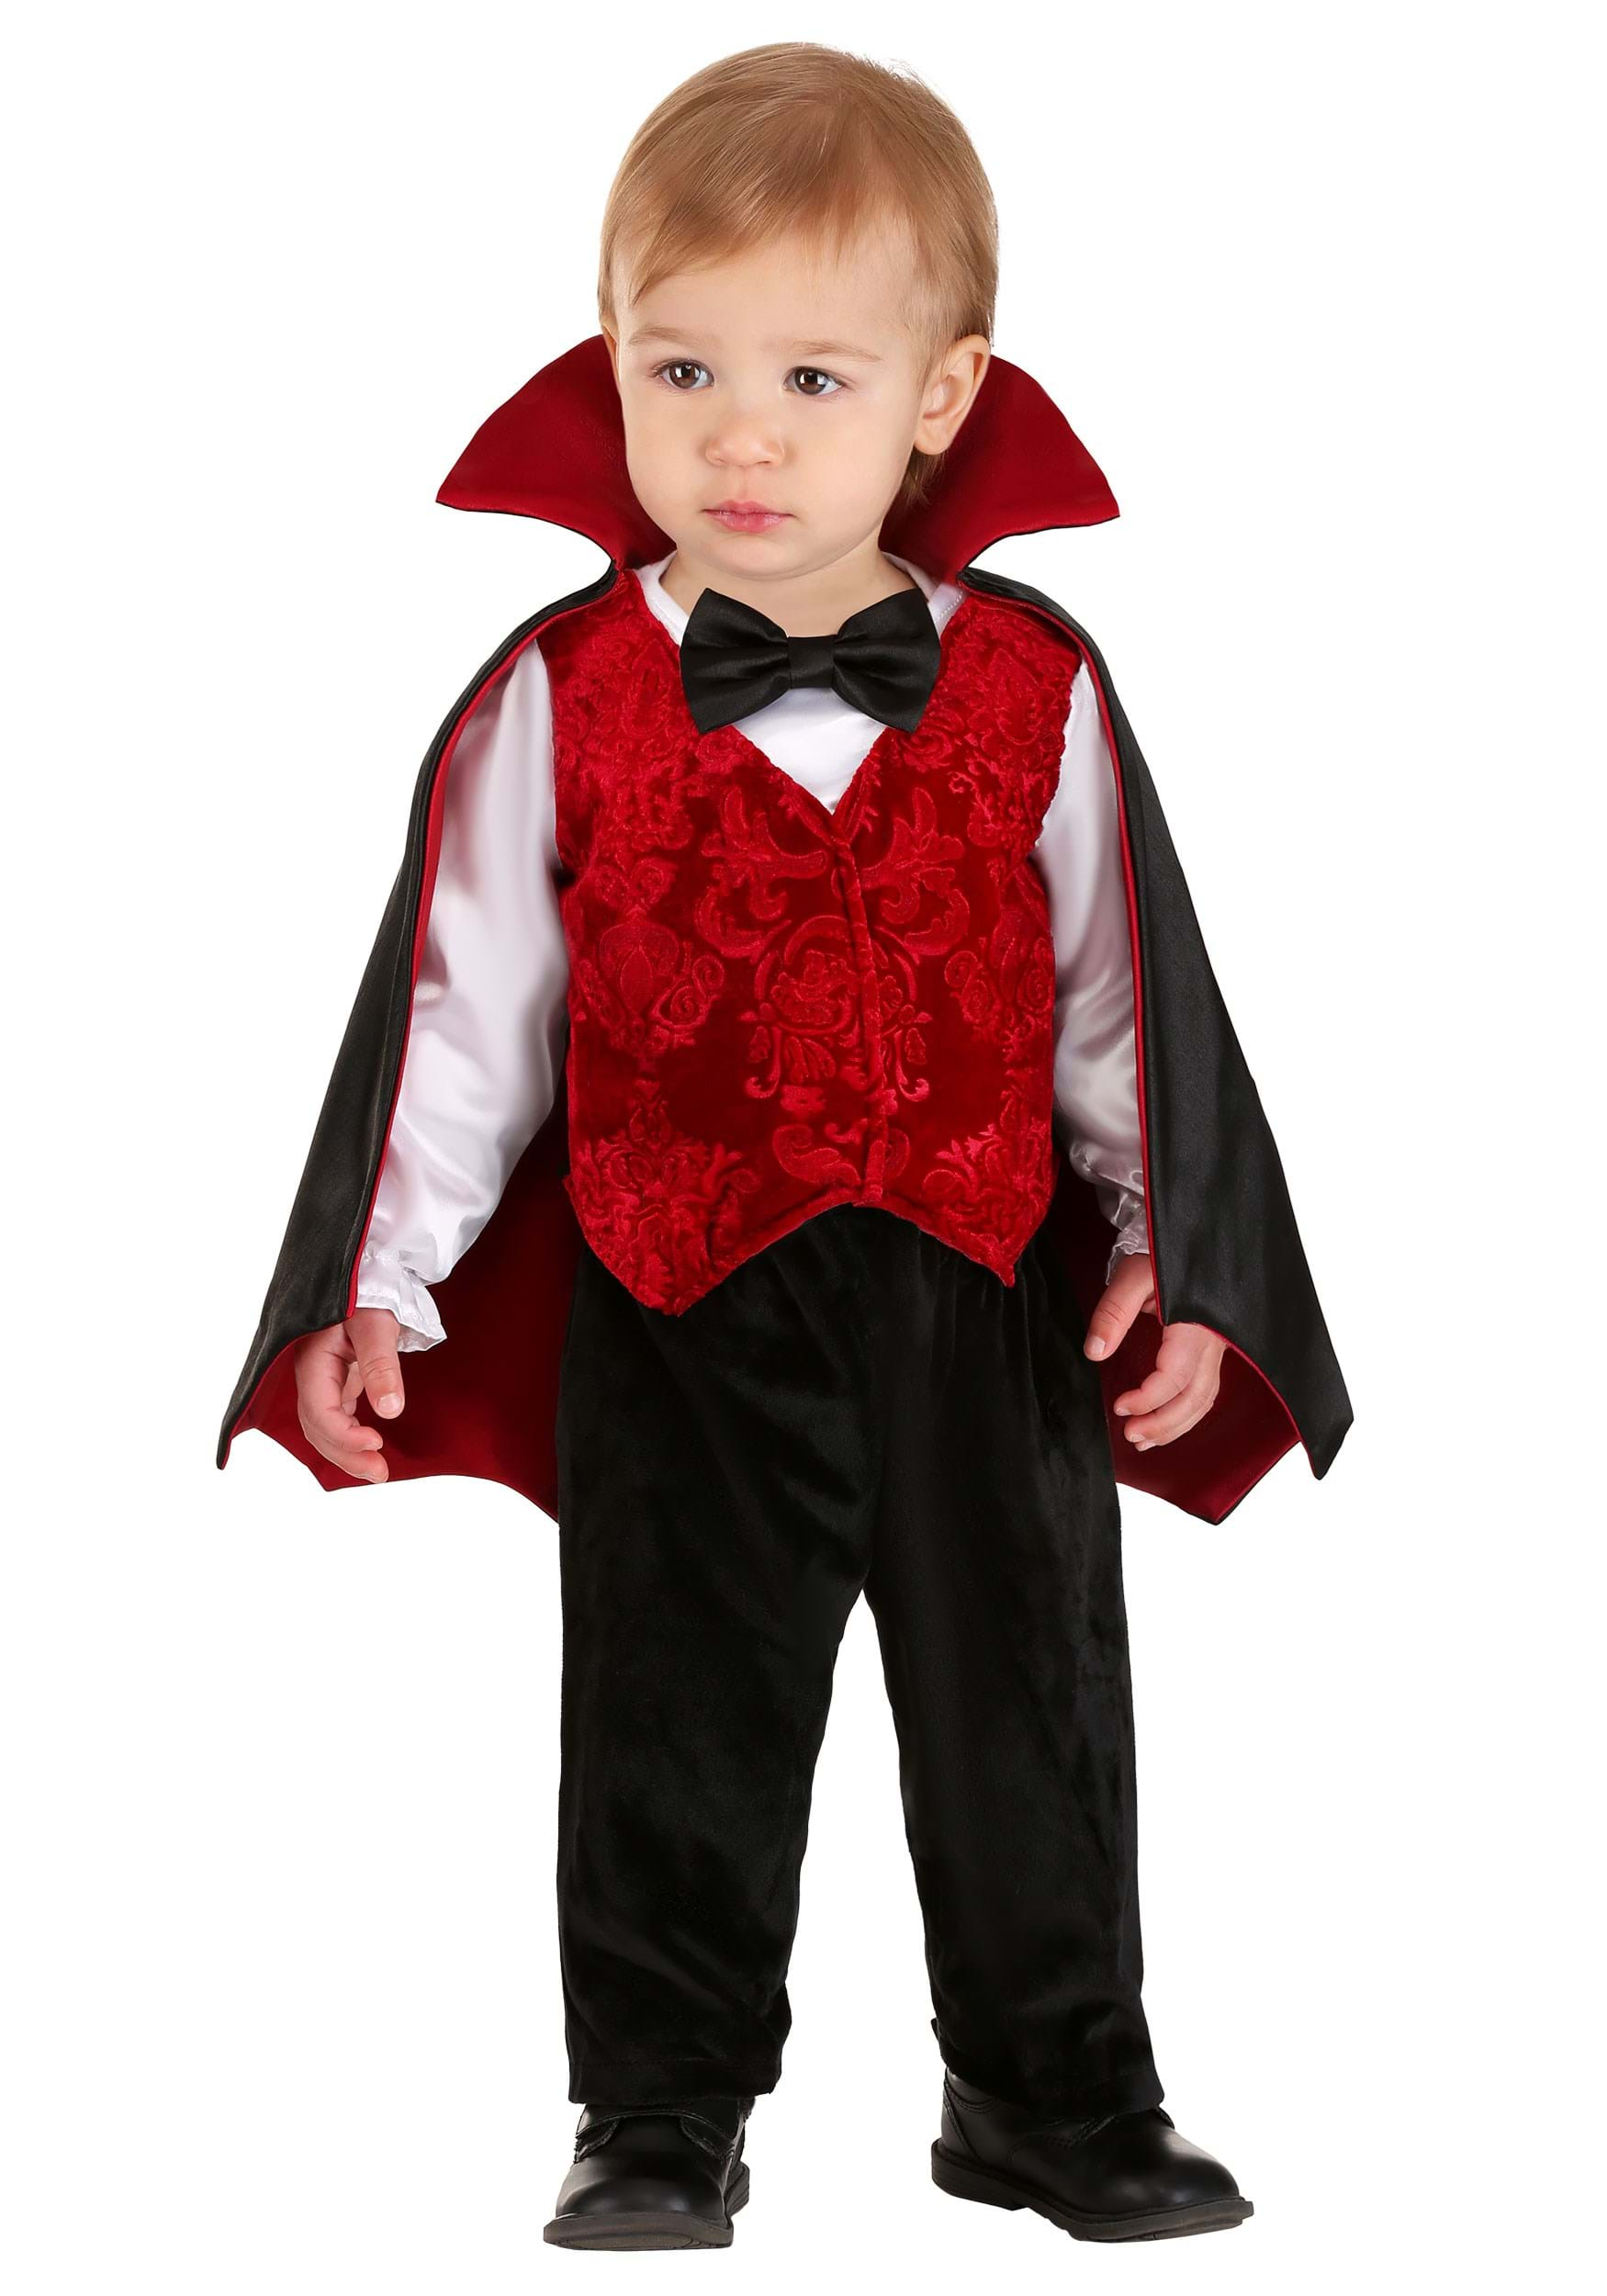 Infant Halloween Costumes 3 6 Months